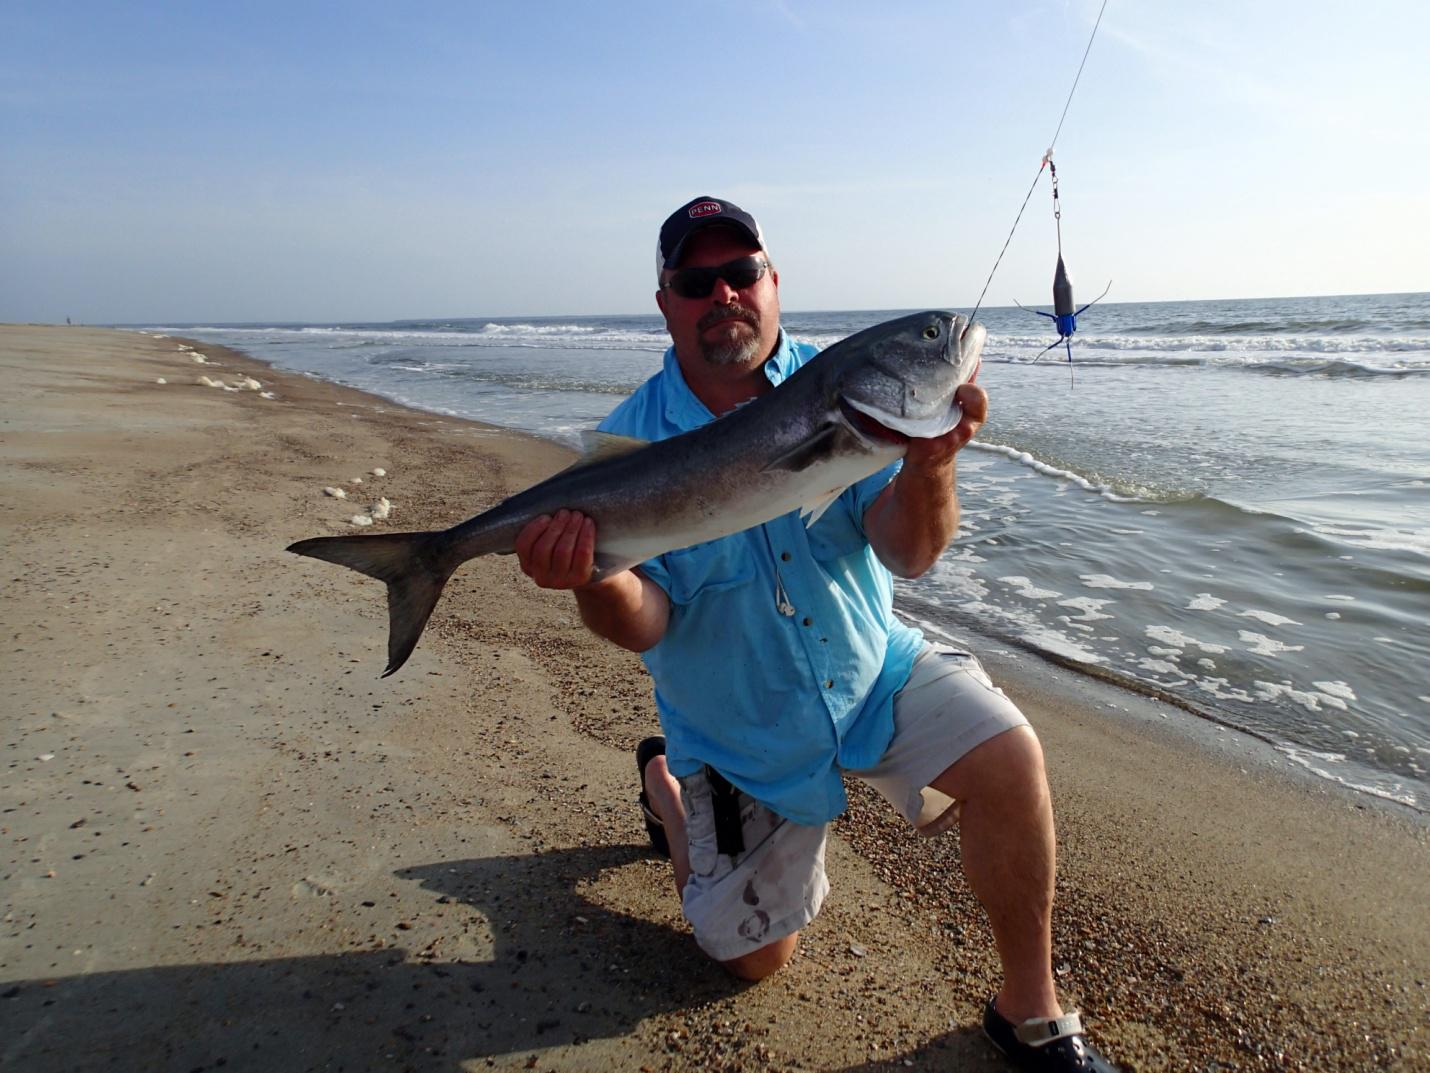 Capt judy inshore fishing report april 24 2017 for West marine fishing shirts